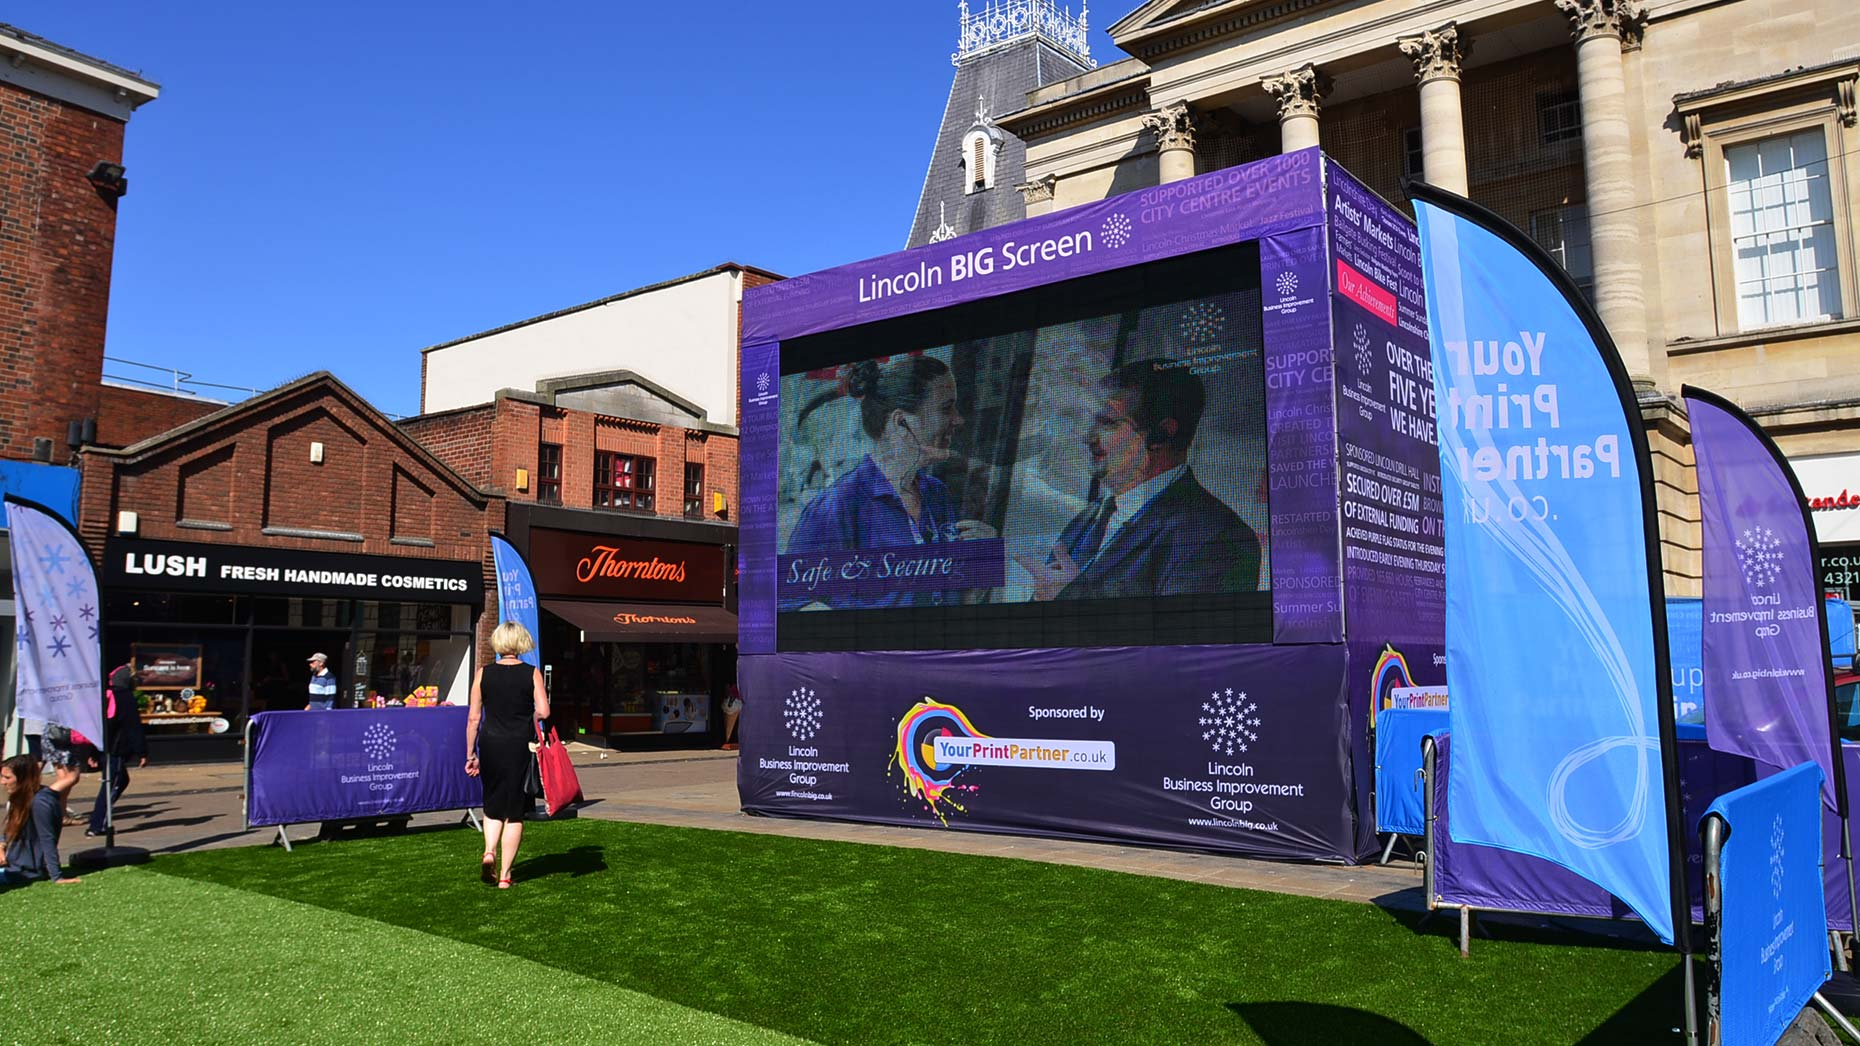 The Commonwealth Live Screen in Cornhill, Lincoln. Photo: Steve Smailes for The Lincolnite